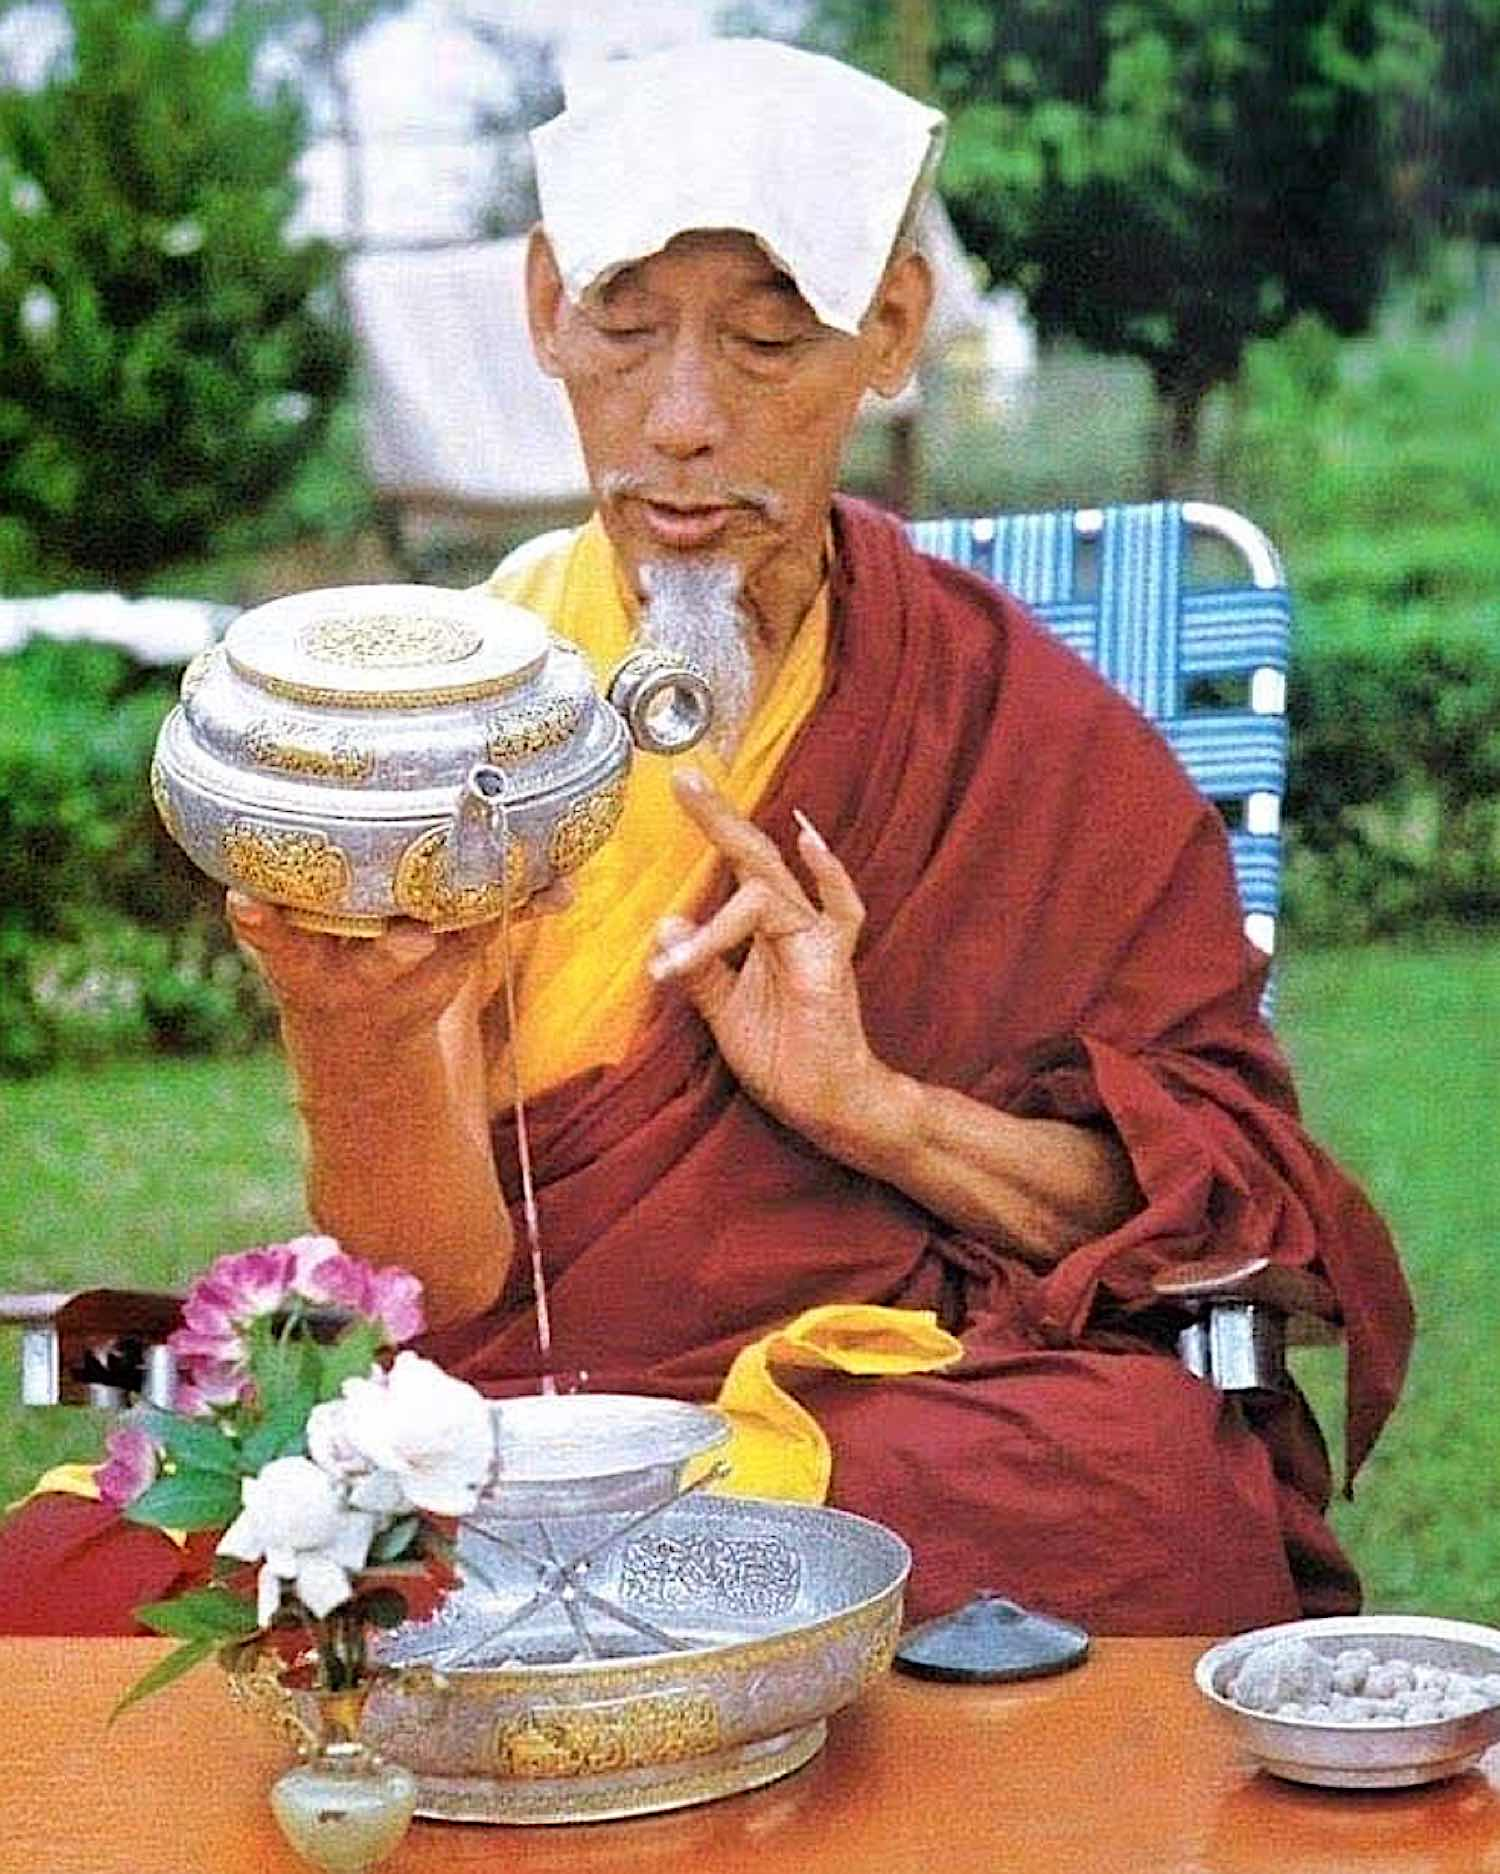 The highly respected Gelug master, Tulku Drakpa Gyaltsen, (1619-1657) — an incarnation of Manjushri and Mahasiddha Virupa — advised that we should all practise the sadhanas of Vajrapani, Hayagriva and King Garuda and make offerings to the Nagas. The Naga offerings are important because our world is suffering through ignorance, greed, politics and lack of respect for the environment. We make offering to the Nagas to help to heal our water systems which are contaminated; we all suffer from long droughts, abnormal rainfall, and a shortage of good water. There are all kinds of climate problems and the world weather patterns are changing rapidly. Who are the Nagas? According to Sutras and Shastras Nagas are classified as beings of the animal realm. For most Nagas, the upper half of the body is human and the lower half is like a serpent or fish. They have beautiful human faces and wear jewelled crowns and beautiful ornaments such as earrings, necklaces and so on. Male Nagas can be powerful and handsome looking and female Nagas are beautiful and attractive. Some N agas possess great powers , similar to the gods. The Naga realm is said to be under the oceans and seas. As well, Nagas can live in lakes, rivers springs, creeks, or marshland. Nagas also reside in trees called Naga trees. According to the famous Tibetan scholar, Dungkar Losang Thinley Rinpoche's encyclopedia, most of the Nagas are wealthy. They wear most expensive jewels and ornaments and silk scarves; they have a good life. The Nagas are divided into different classes and have various kings and queens and chieftains. There are eight great Nagas: Blue Thaye sits in the east; Red Jokpo sits in the south; Green Tob Gyu sits in the West; multi-coloured Rigden sits in the north; Norgye sits in the southeast, Pedma sits in the northwest, Dung Kyung sits in the southwest, and Varuna sits in the northeast. Many Nagas are very intelligent and they are able to practise Dharma , some have obtained Dharma realizations. Som